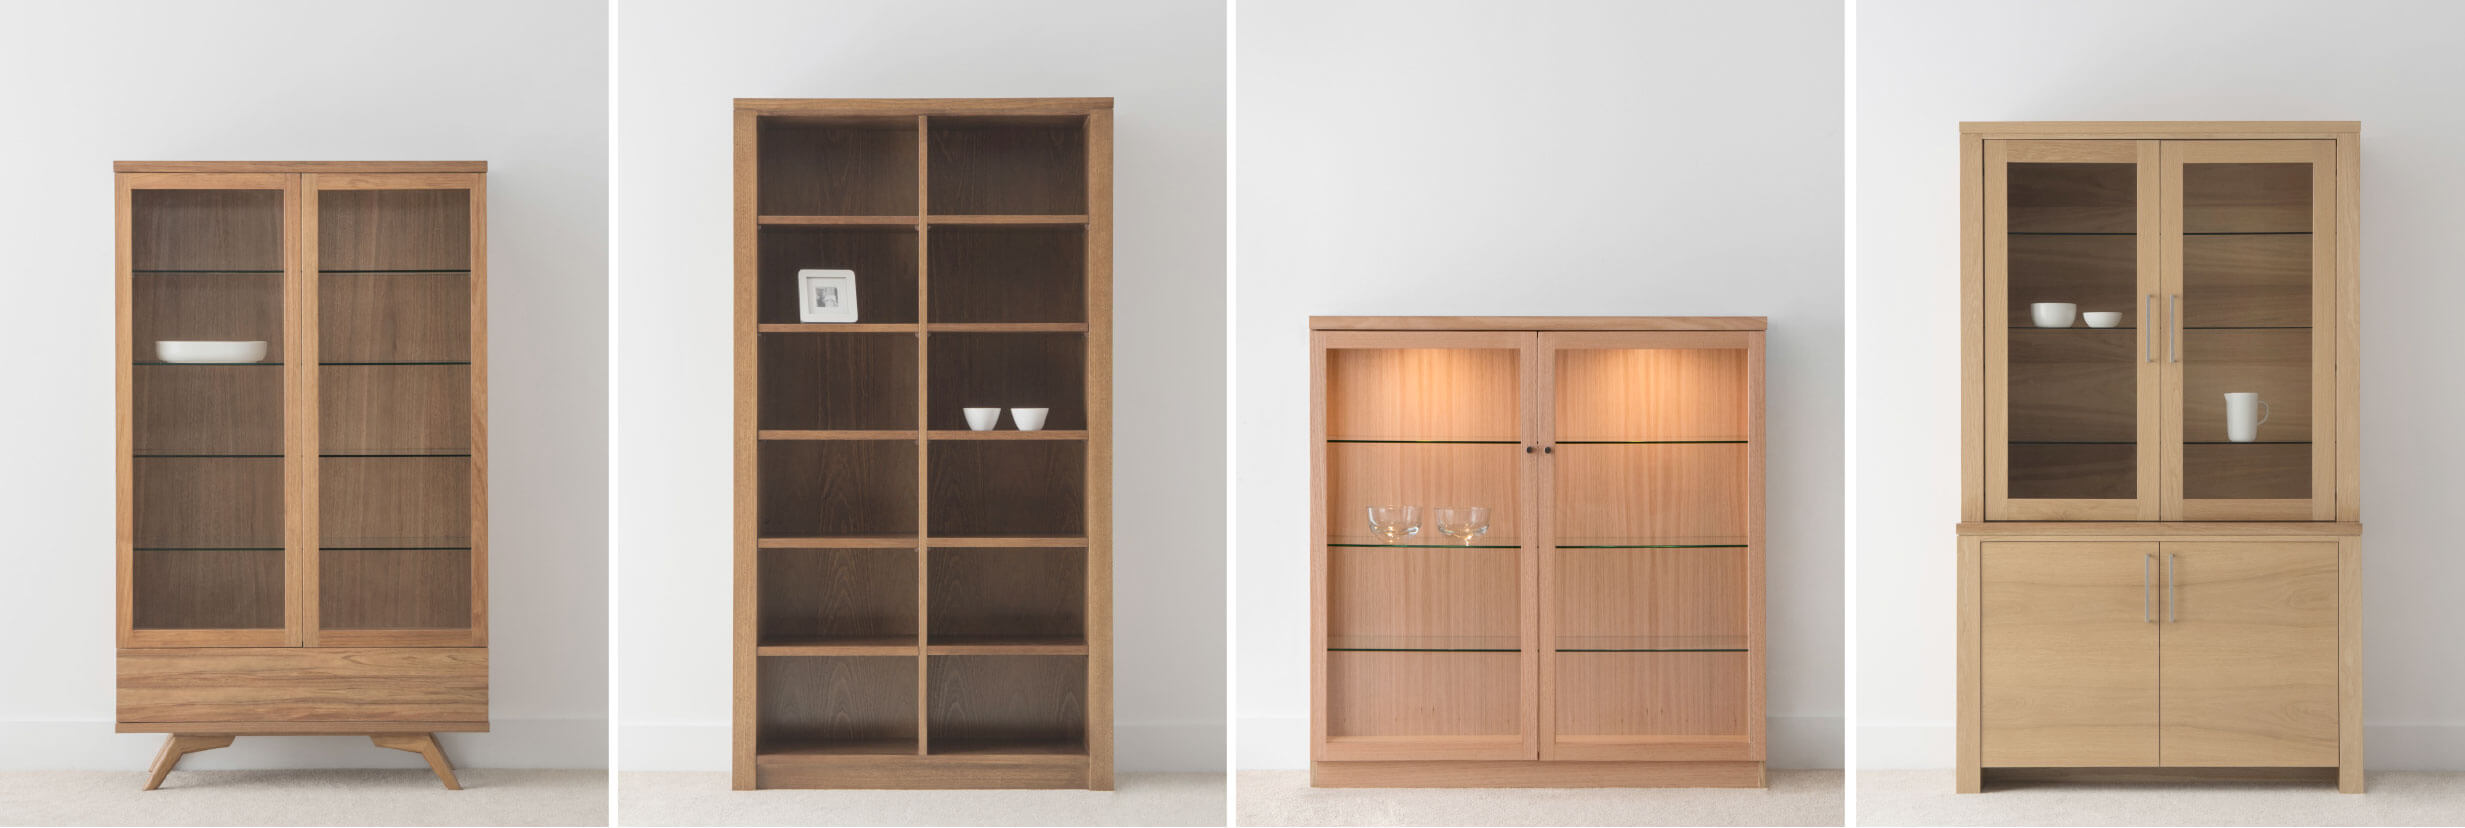 timber display cabinets with different design options